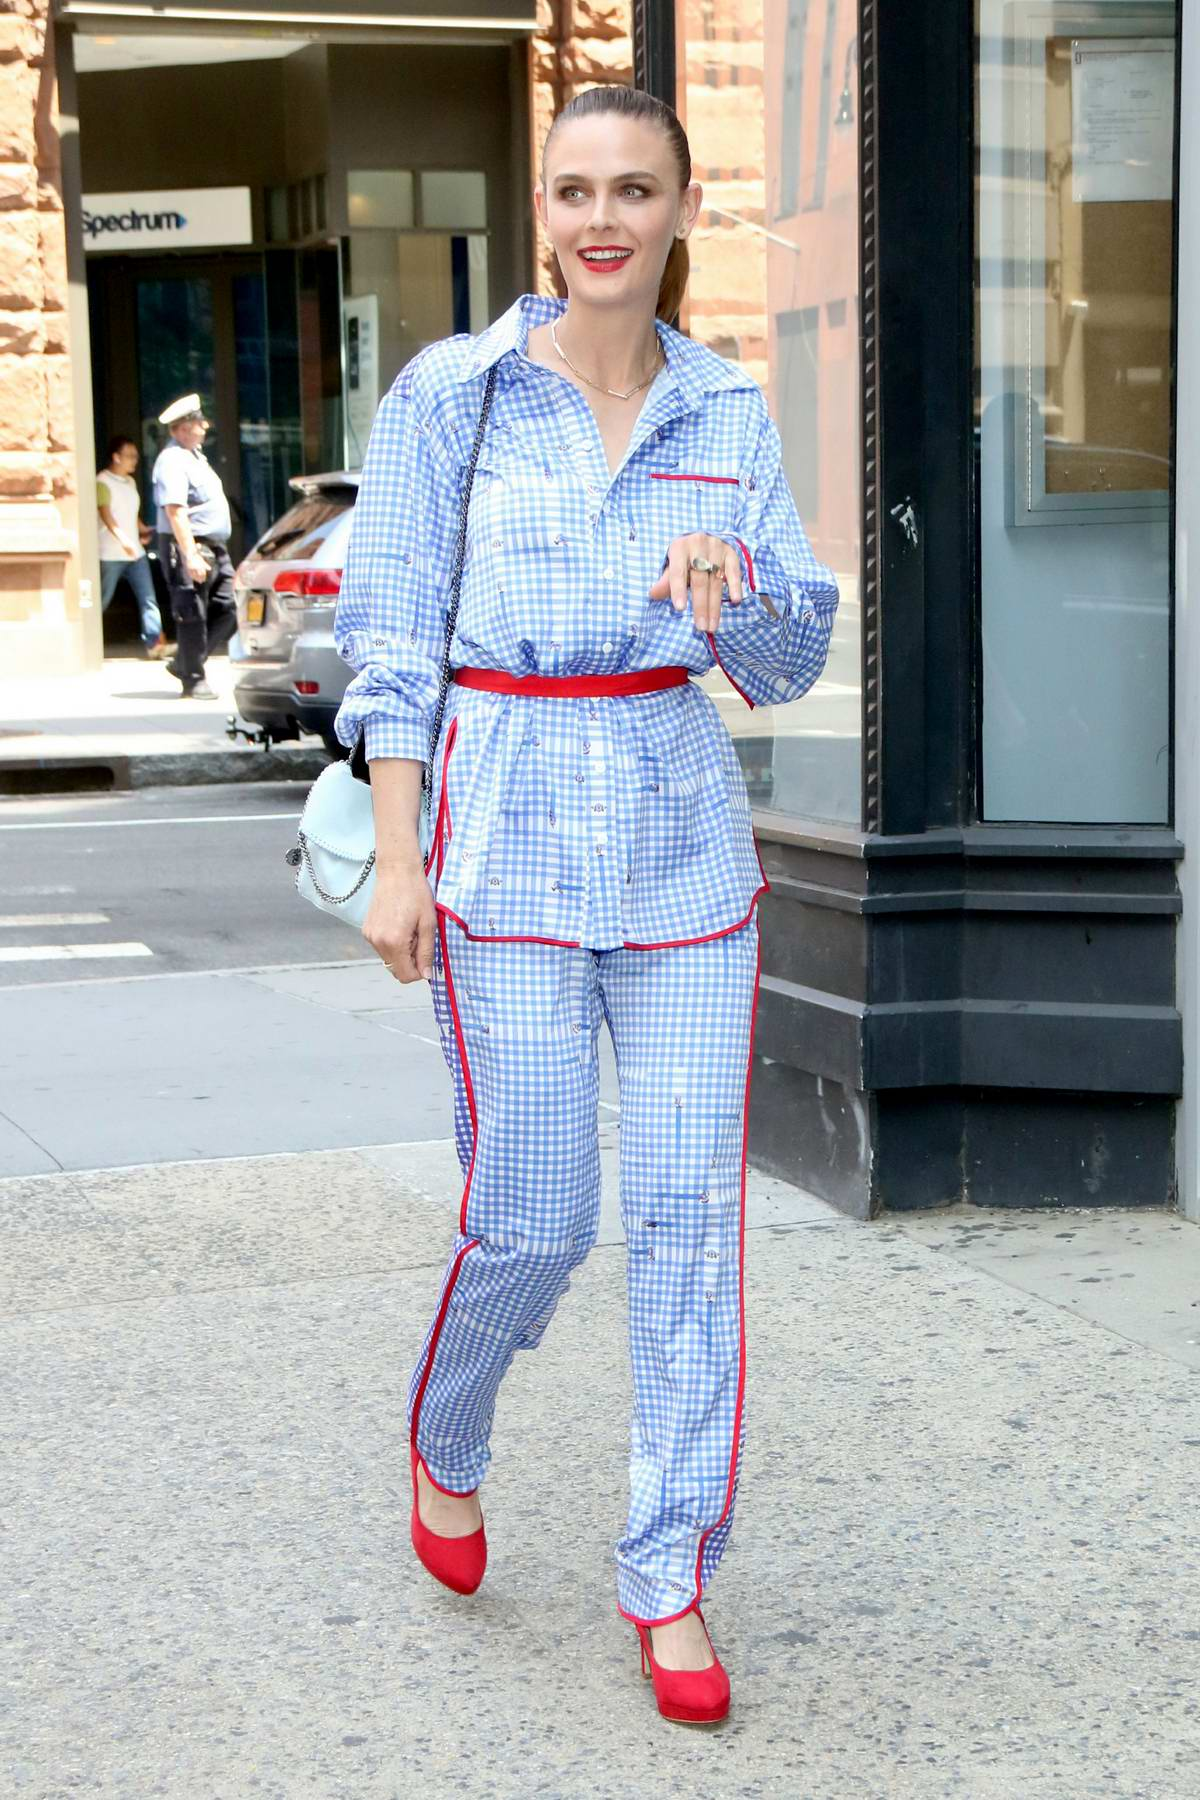 Emily Deschanel looks pretty in a blue checkered jumpsuit while visiting Build Series in New York City